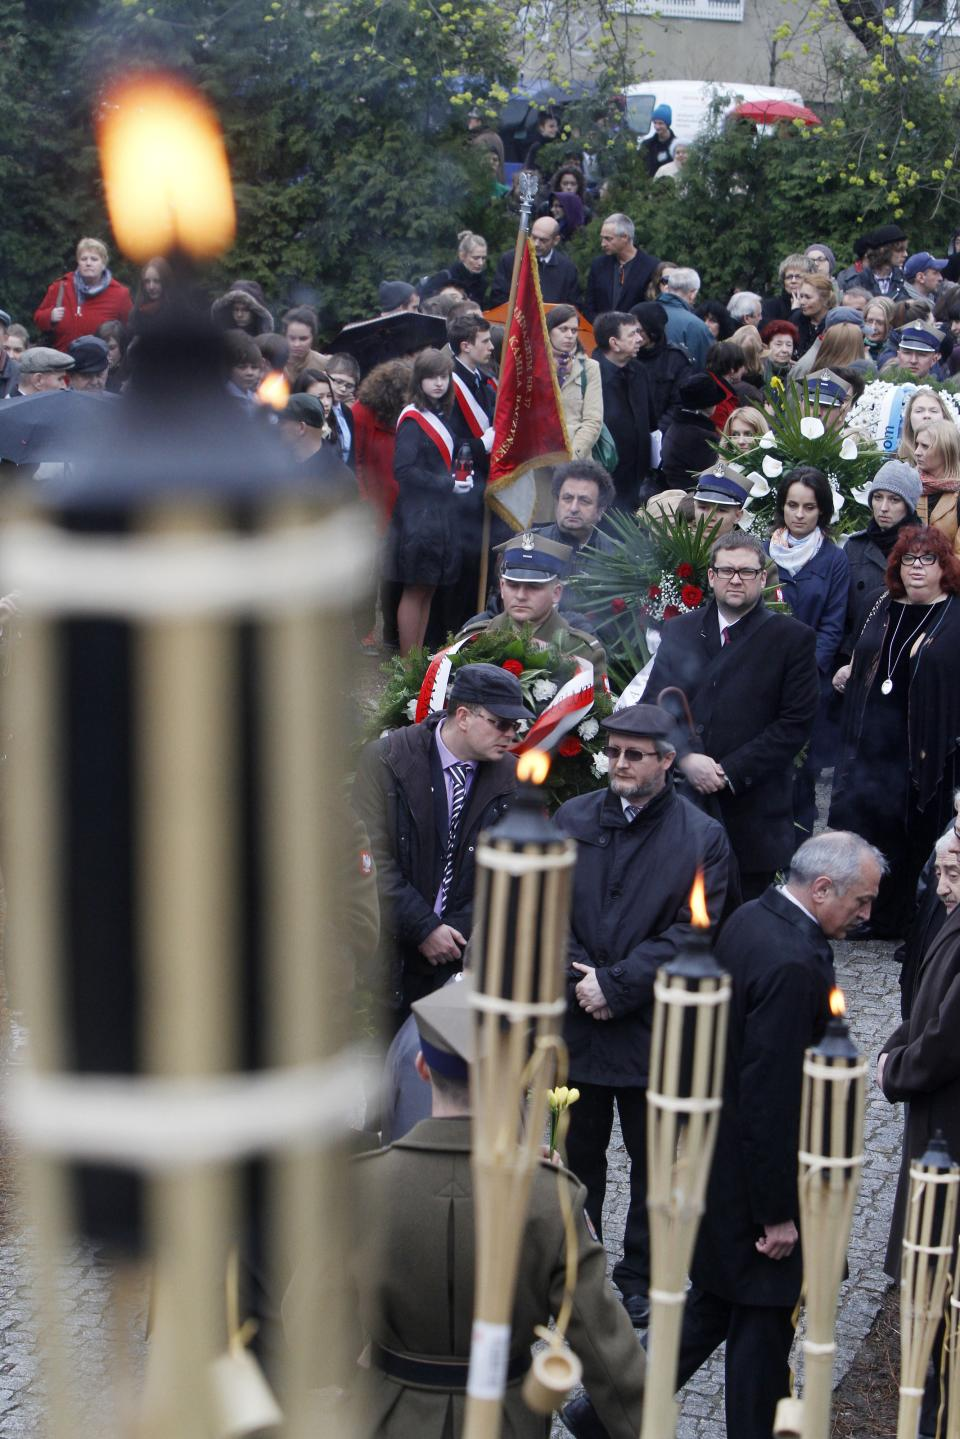 Members of Warsaw's Jewish community, and city officials and others gather to mark the 69th anniversary of the doomed Warsaw Ghetto Uprising, in Warsaw, Poland, on Thursday, April 19, 2012. (AP Photo/Czarek Sokolowski)